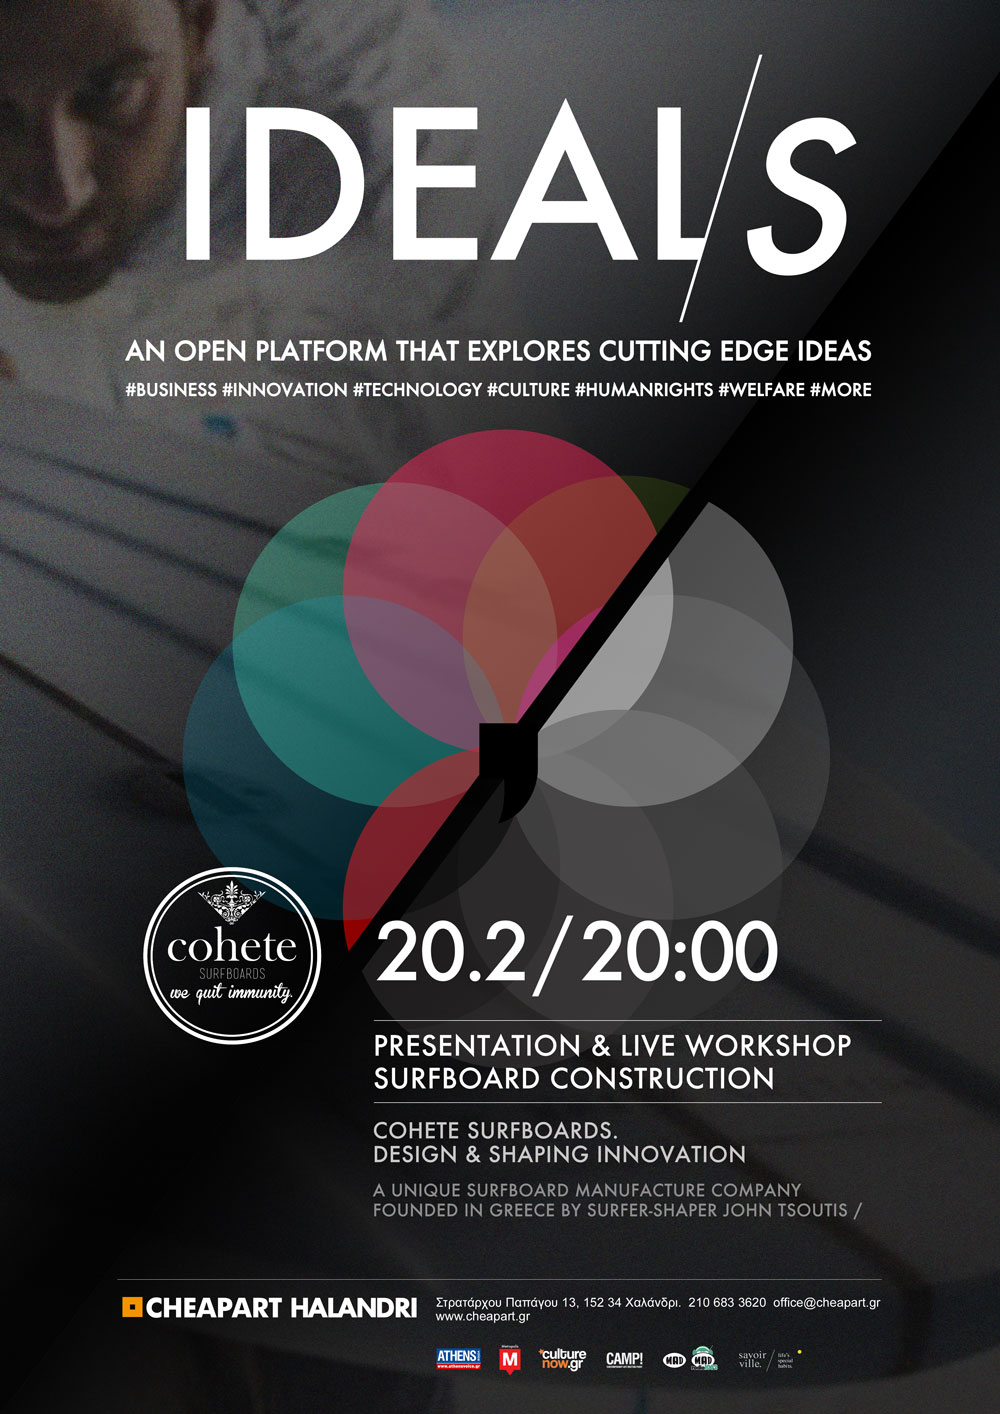 A3-IDEALS-COHETE-LOW